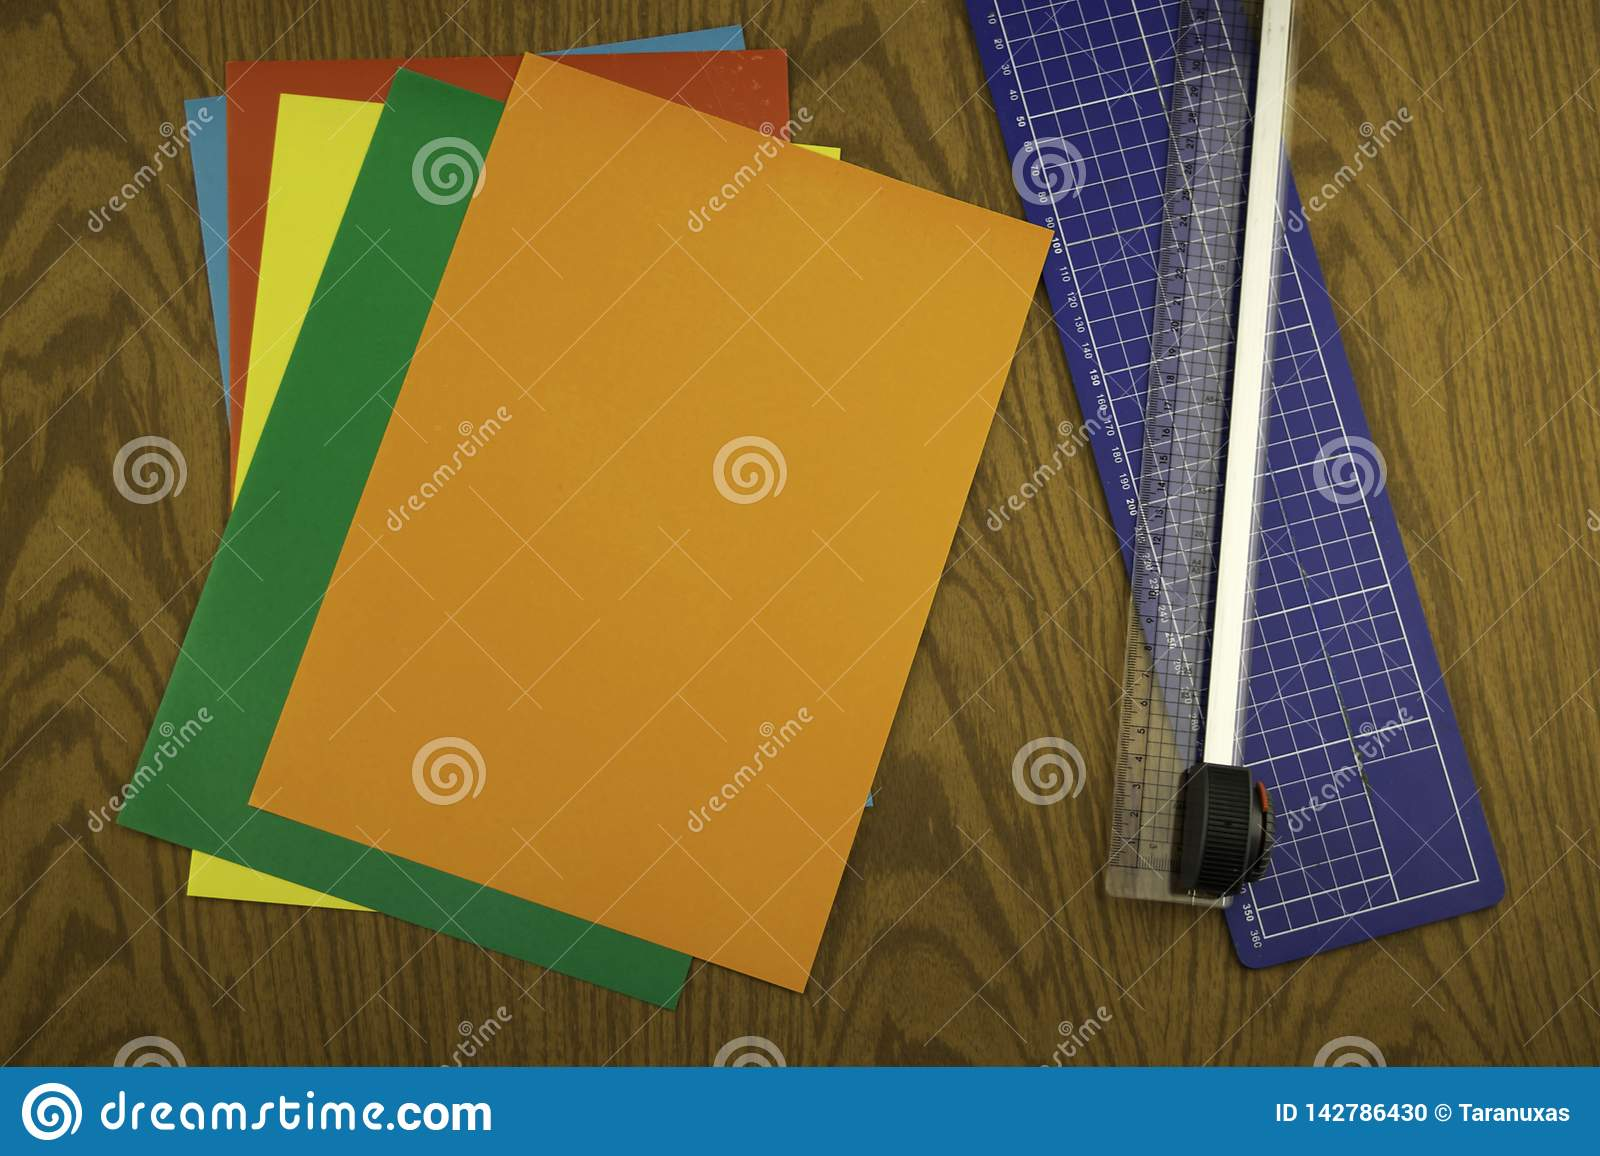 Paper cutter and color origami paper on a wooden table